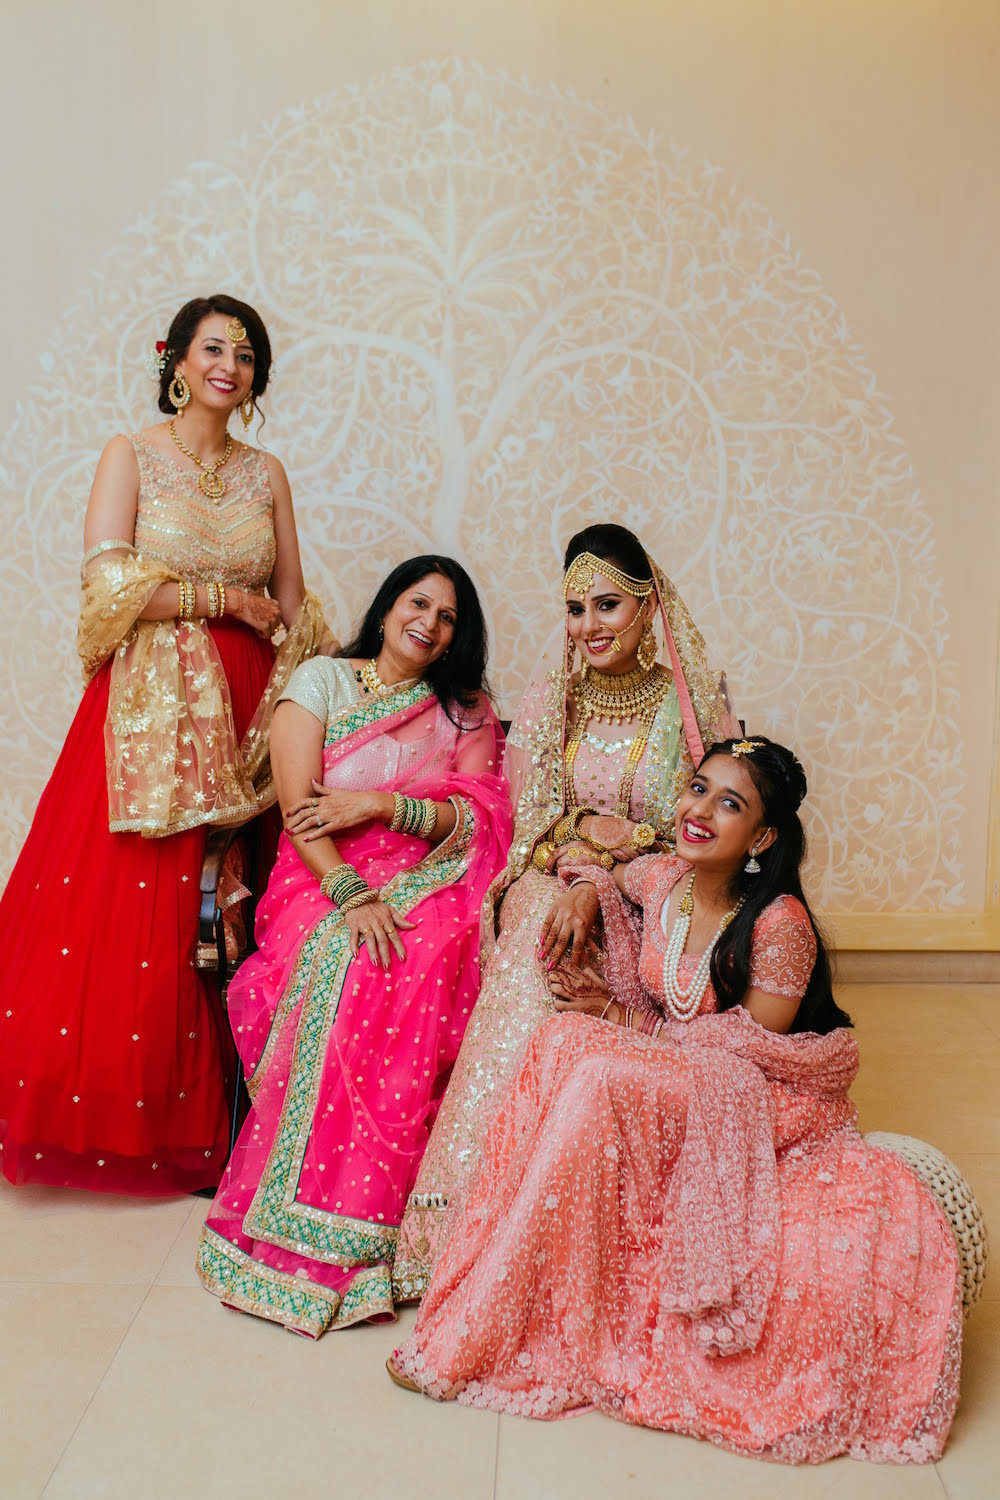 Family Portrait with Bridesmaids- Indian Wedding Photography